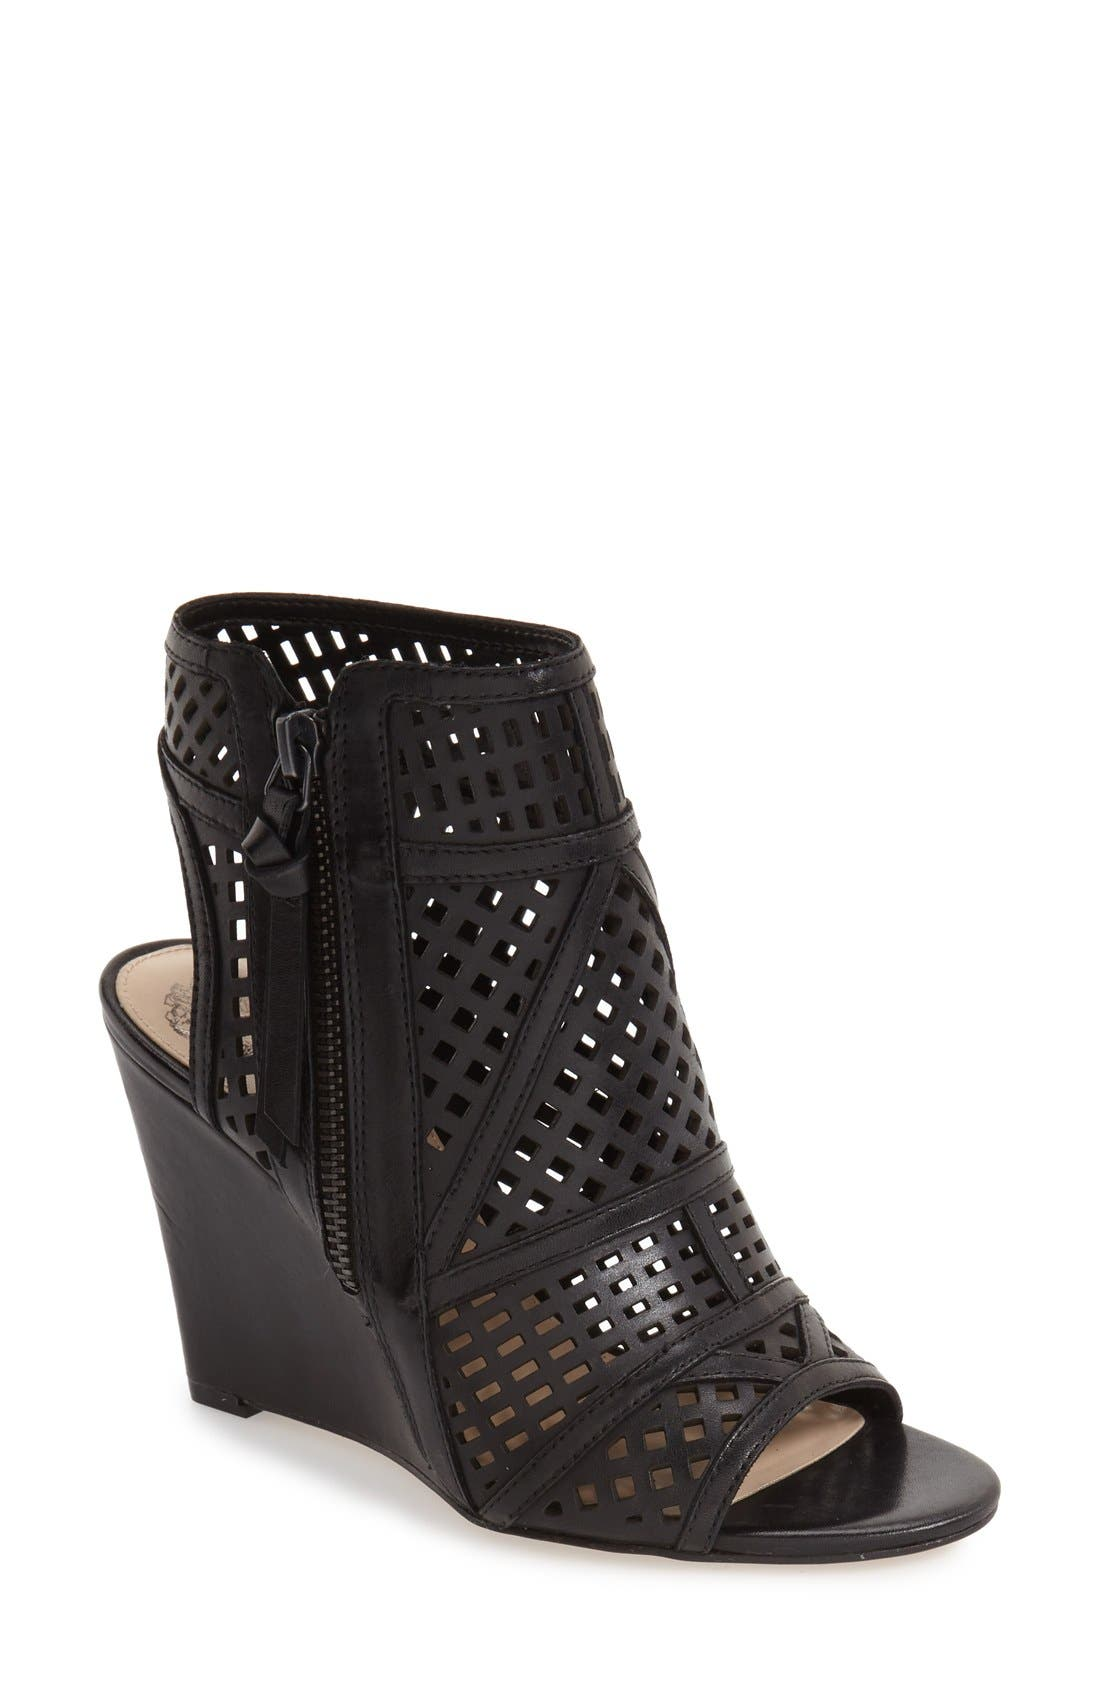 VINCE CAMUTO Xabrina Perforated Wedge Sandal